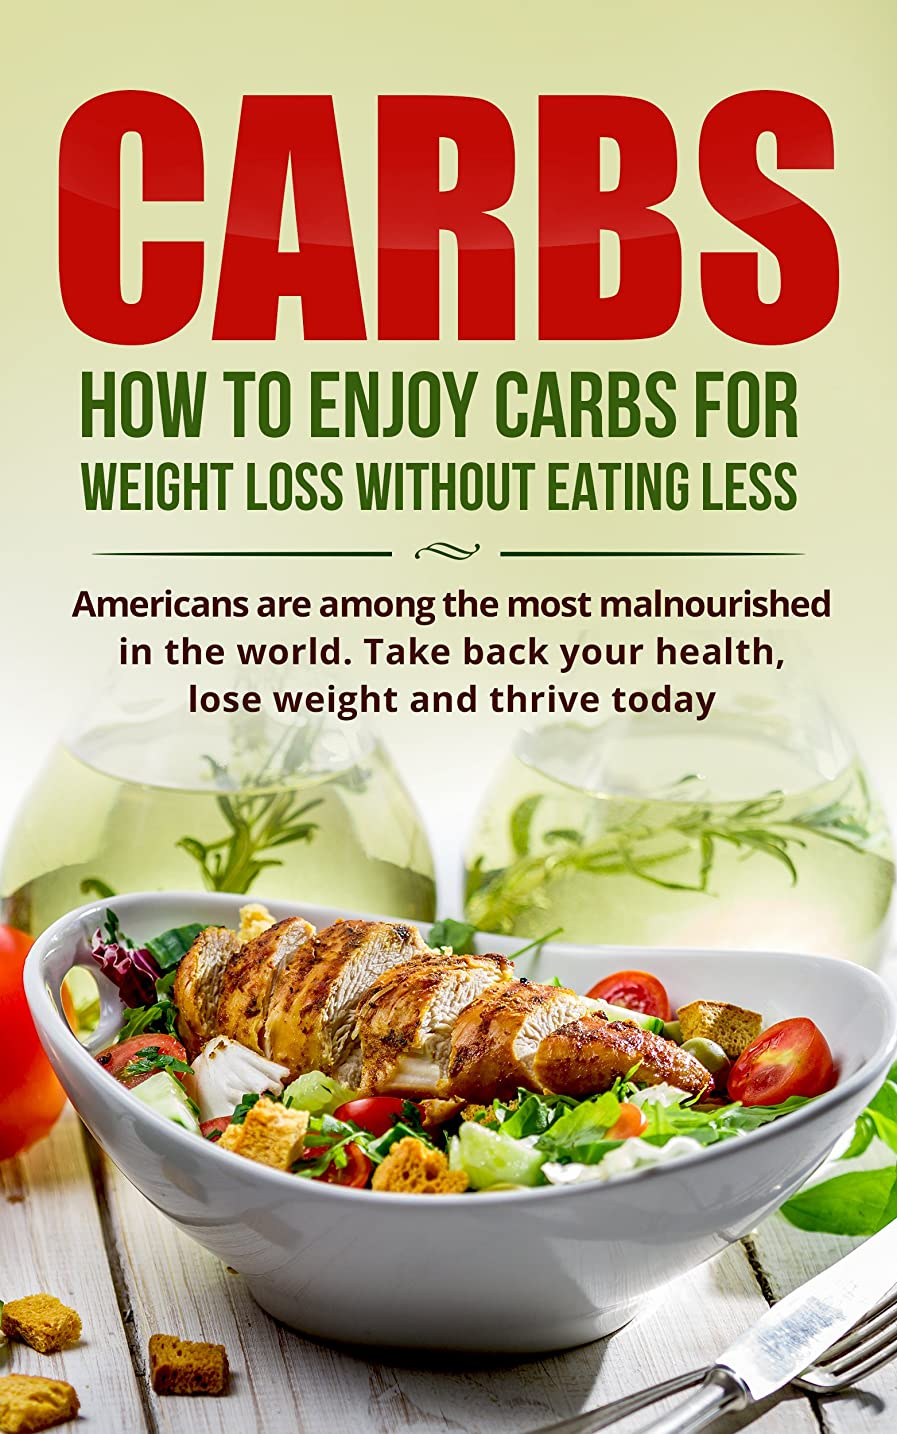 CARBS: How To Enjoy Carbs For Weight Loss Without Eating Less (Weight loss, mindful eating, carbs, low carb, fat loss, cook book, easy cooking,) (English Edition)